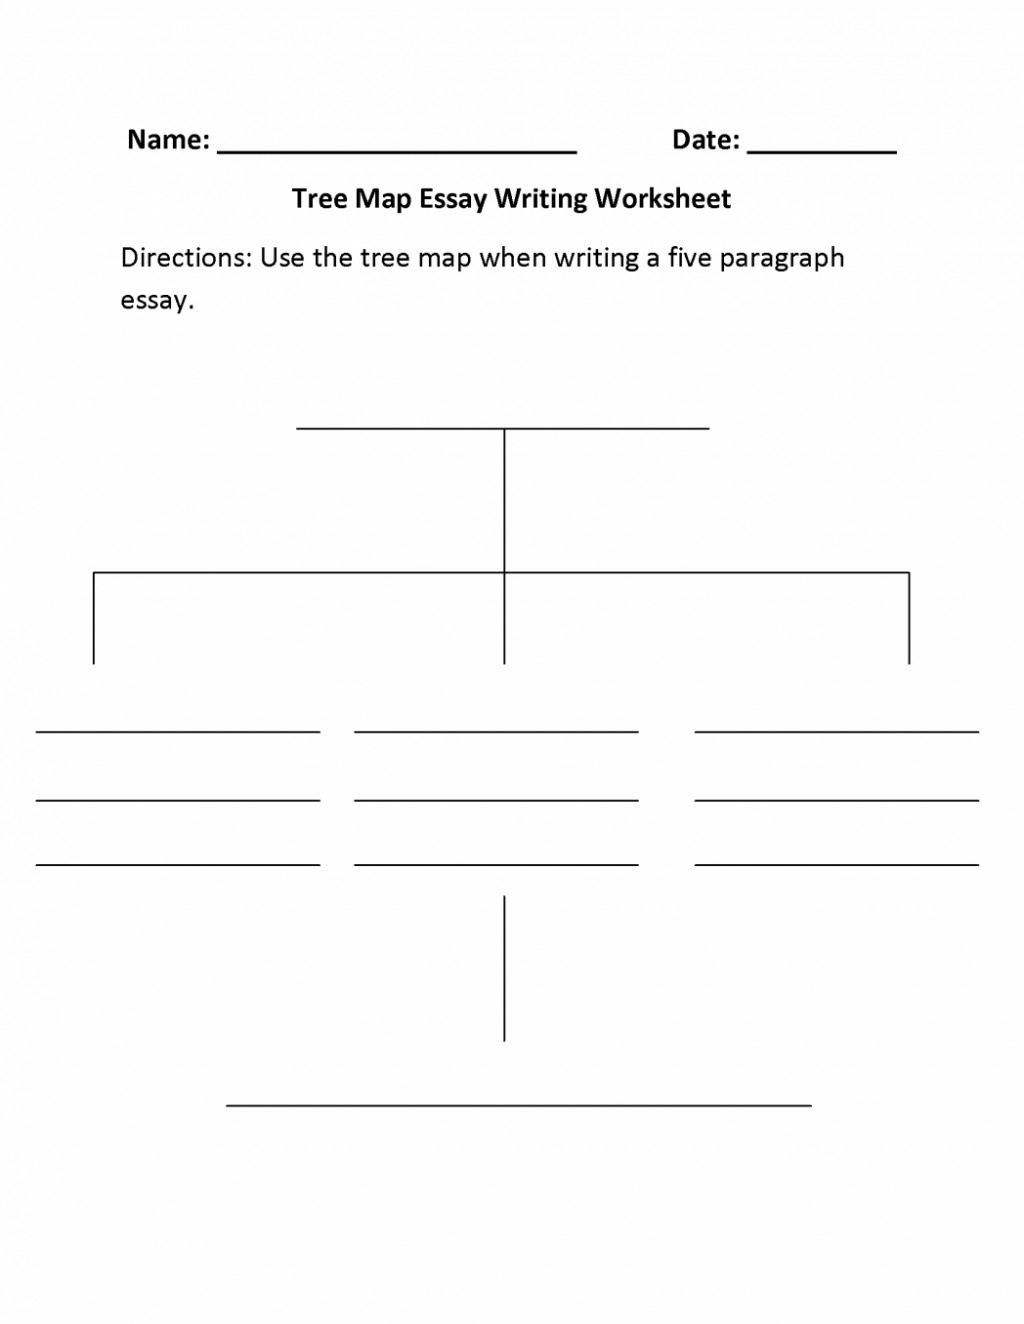 011 Essay Example Schizophrenia Essays On The Family And Free Writing Tools Tree Map Work Shocking Thesis Topics Title Large